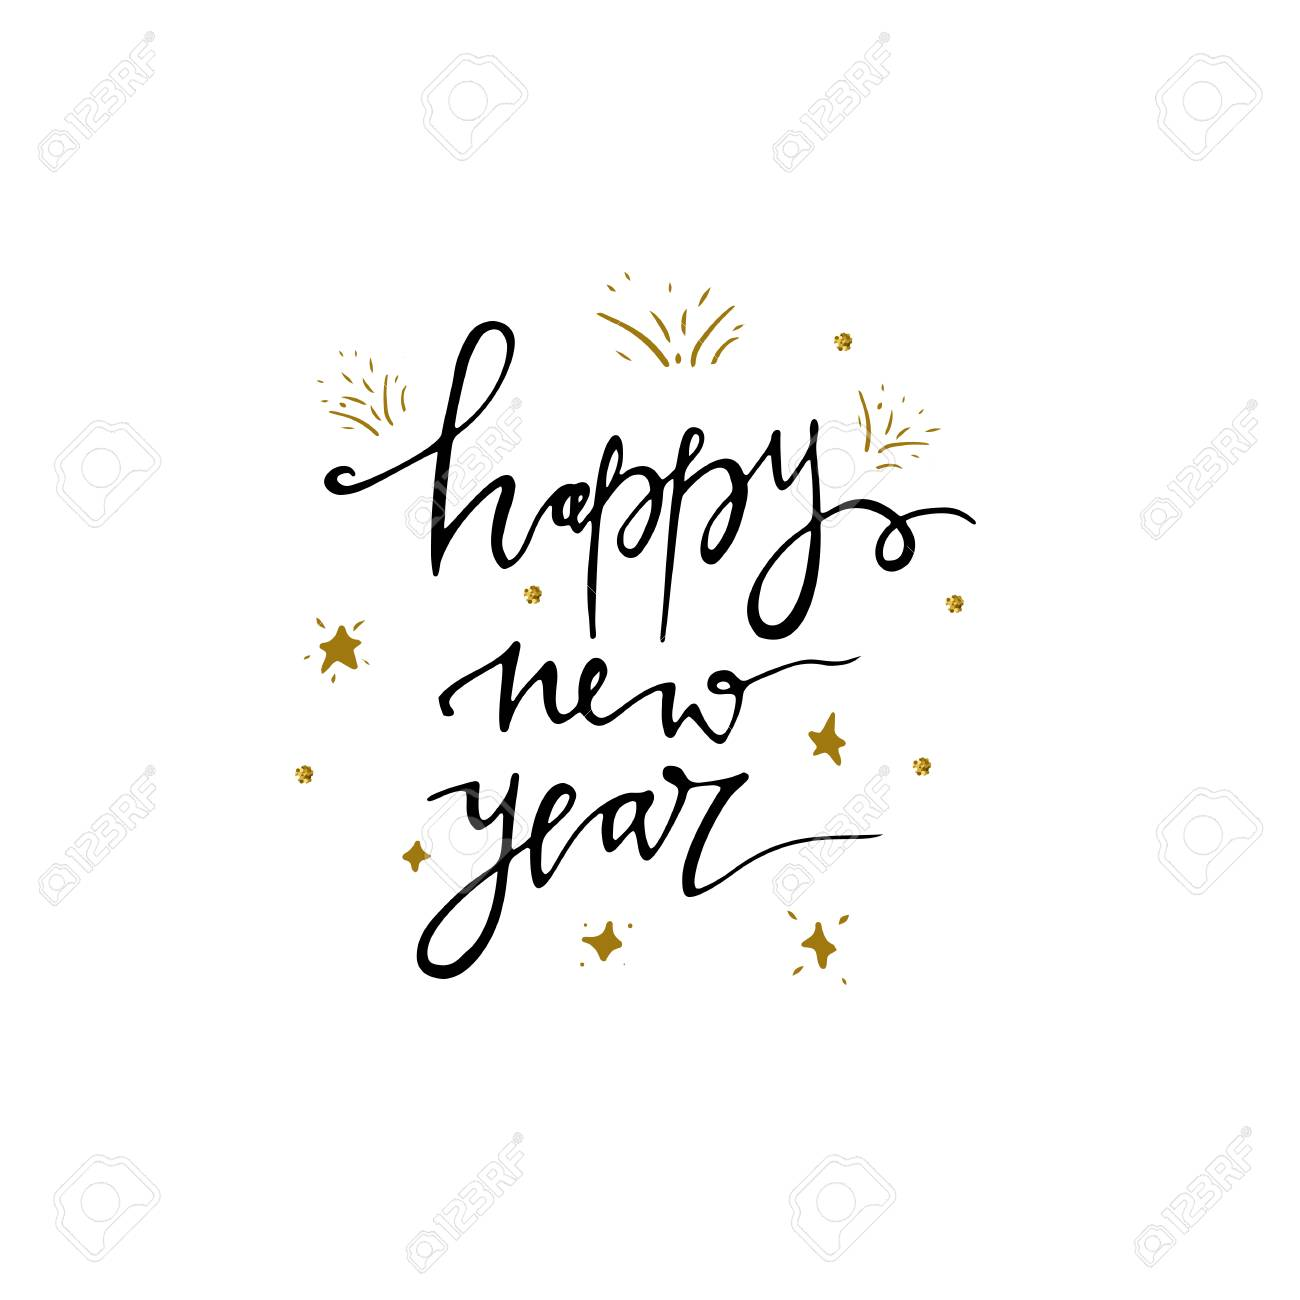 happy new year postcard template modern lettering isolated on white background christmas card concept